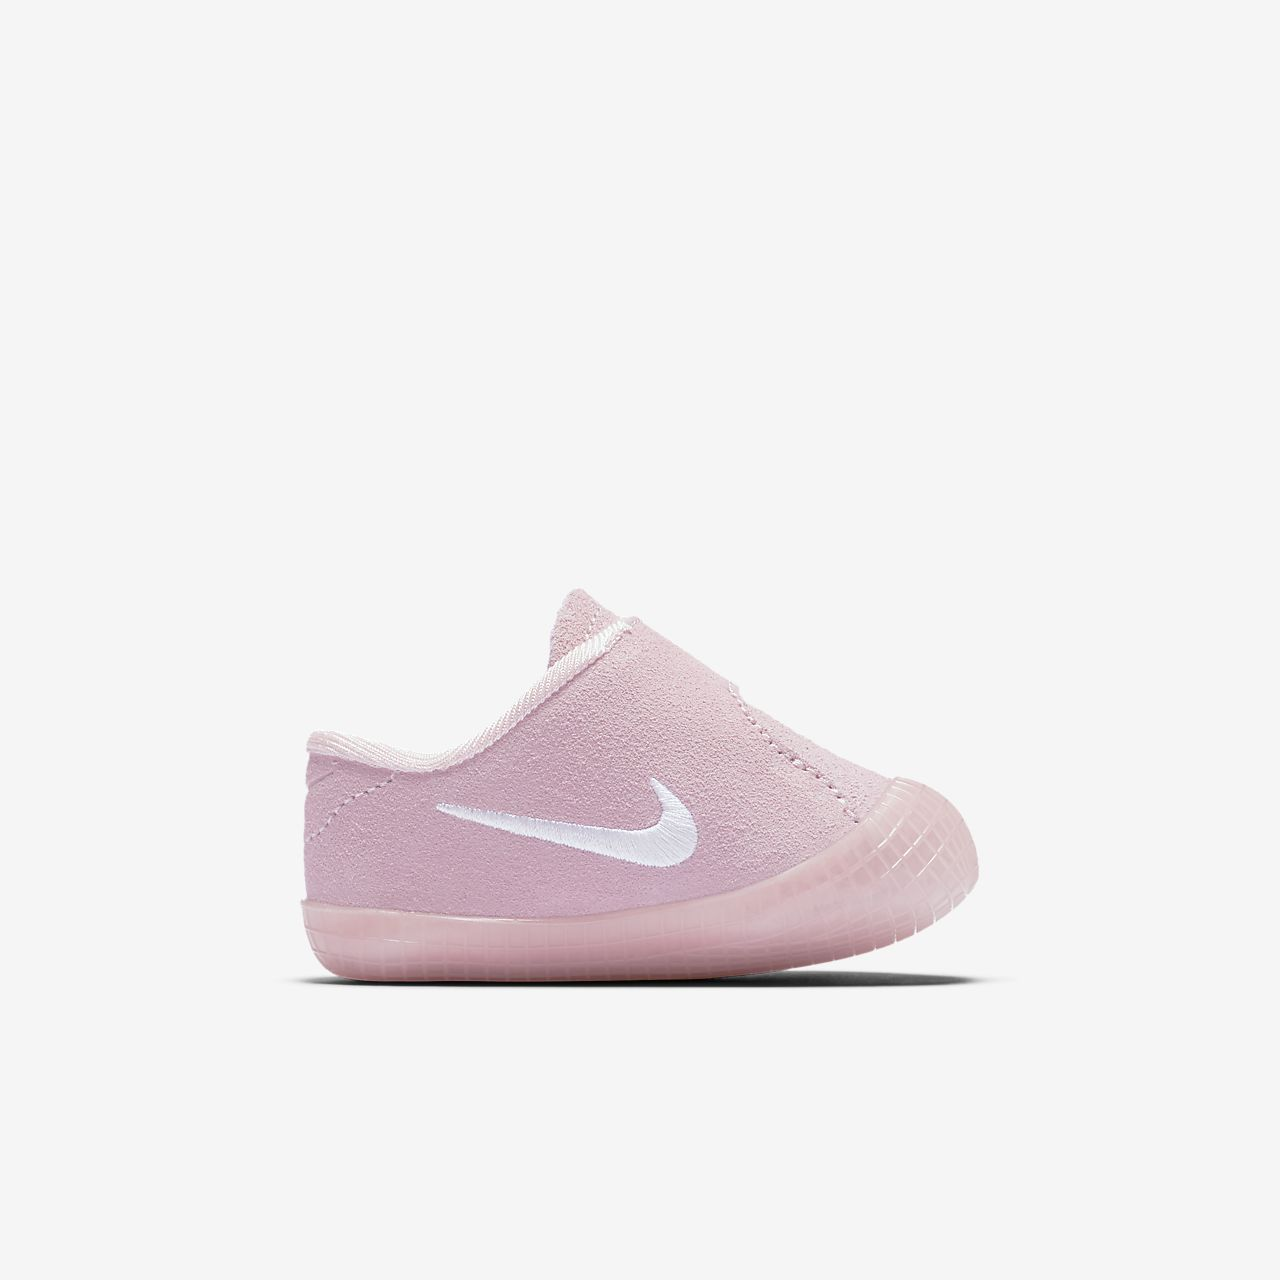 ... Nike Waffle 1 Baby & Toddler Bootie